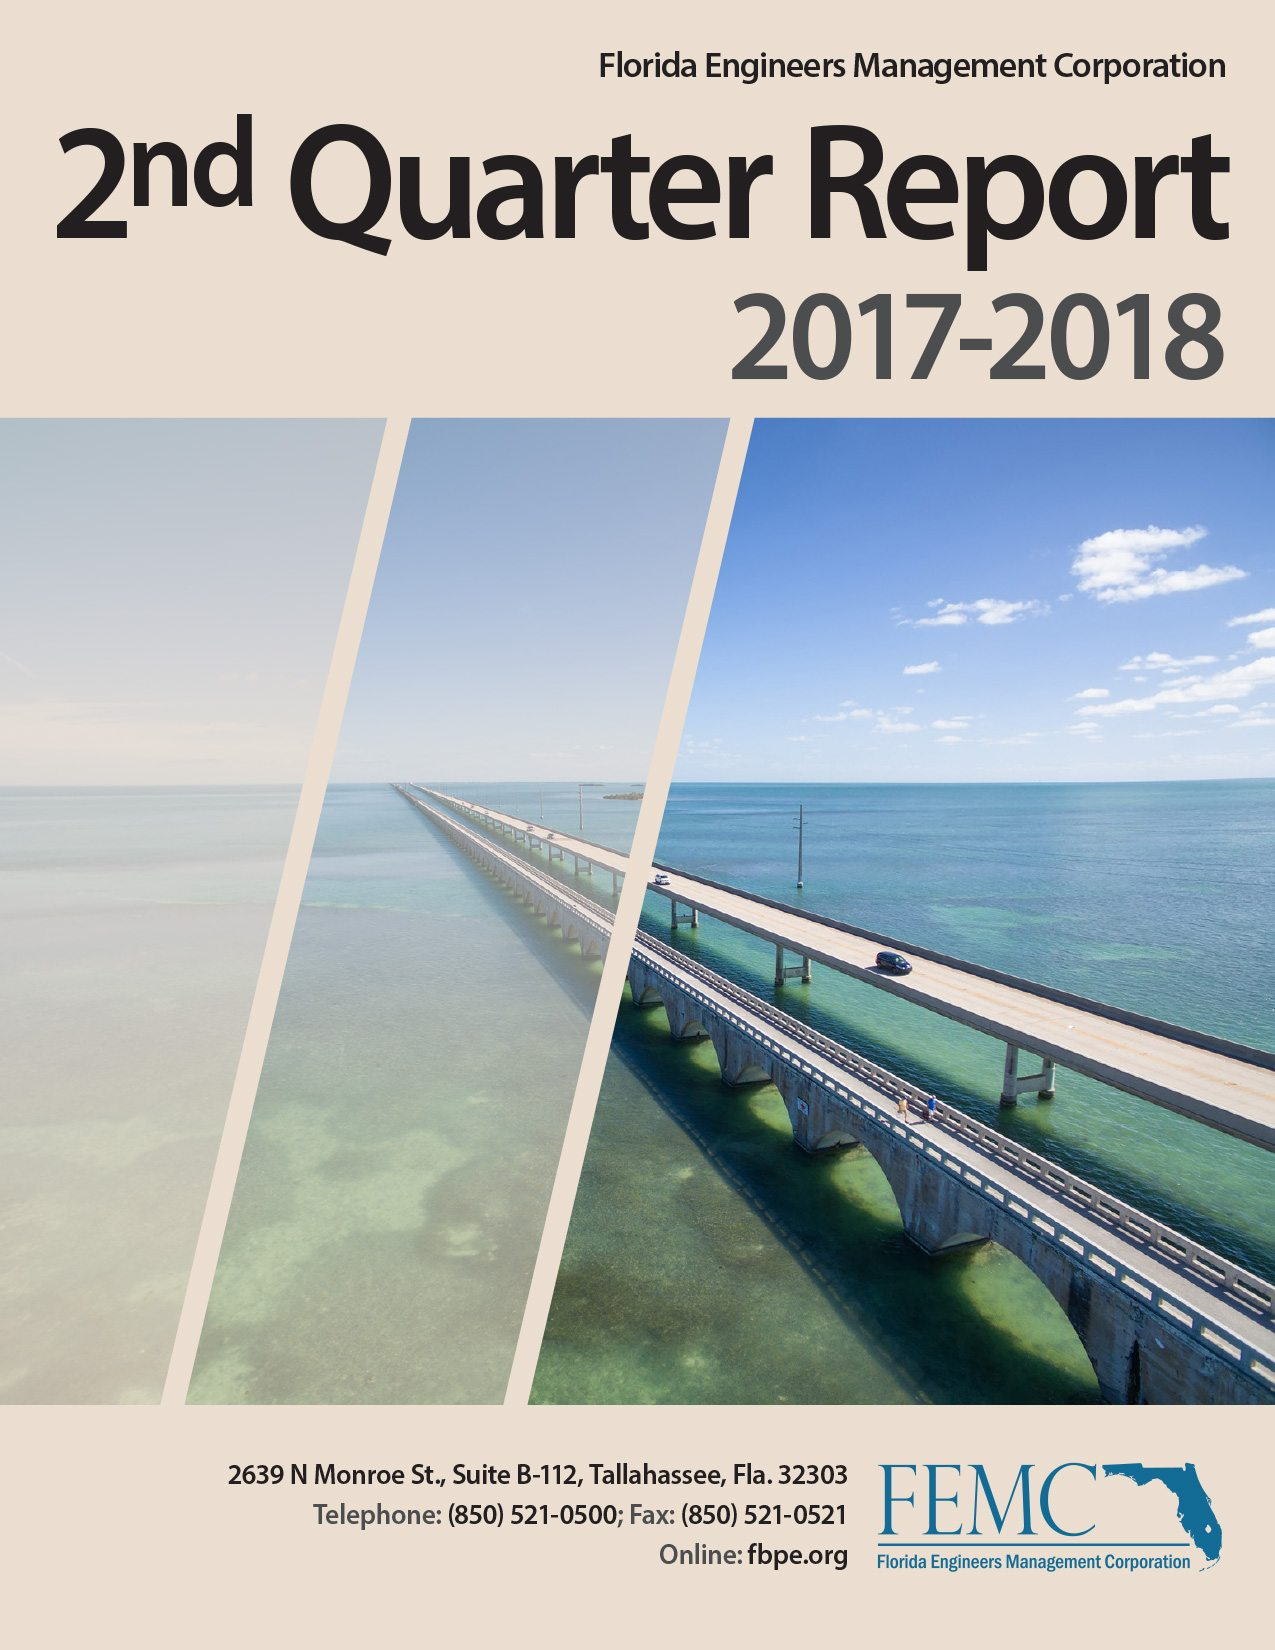 2nd Quarter Report 2017-2018